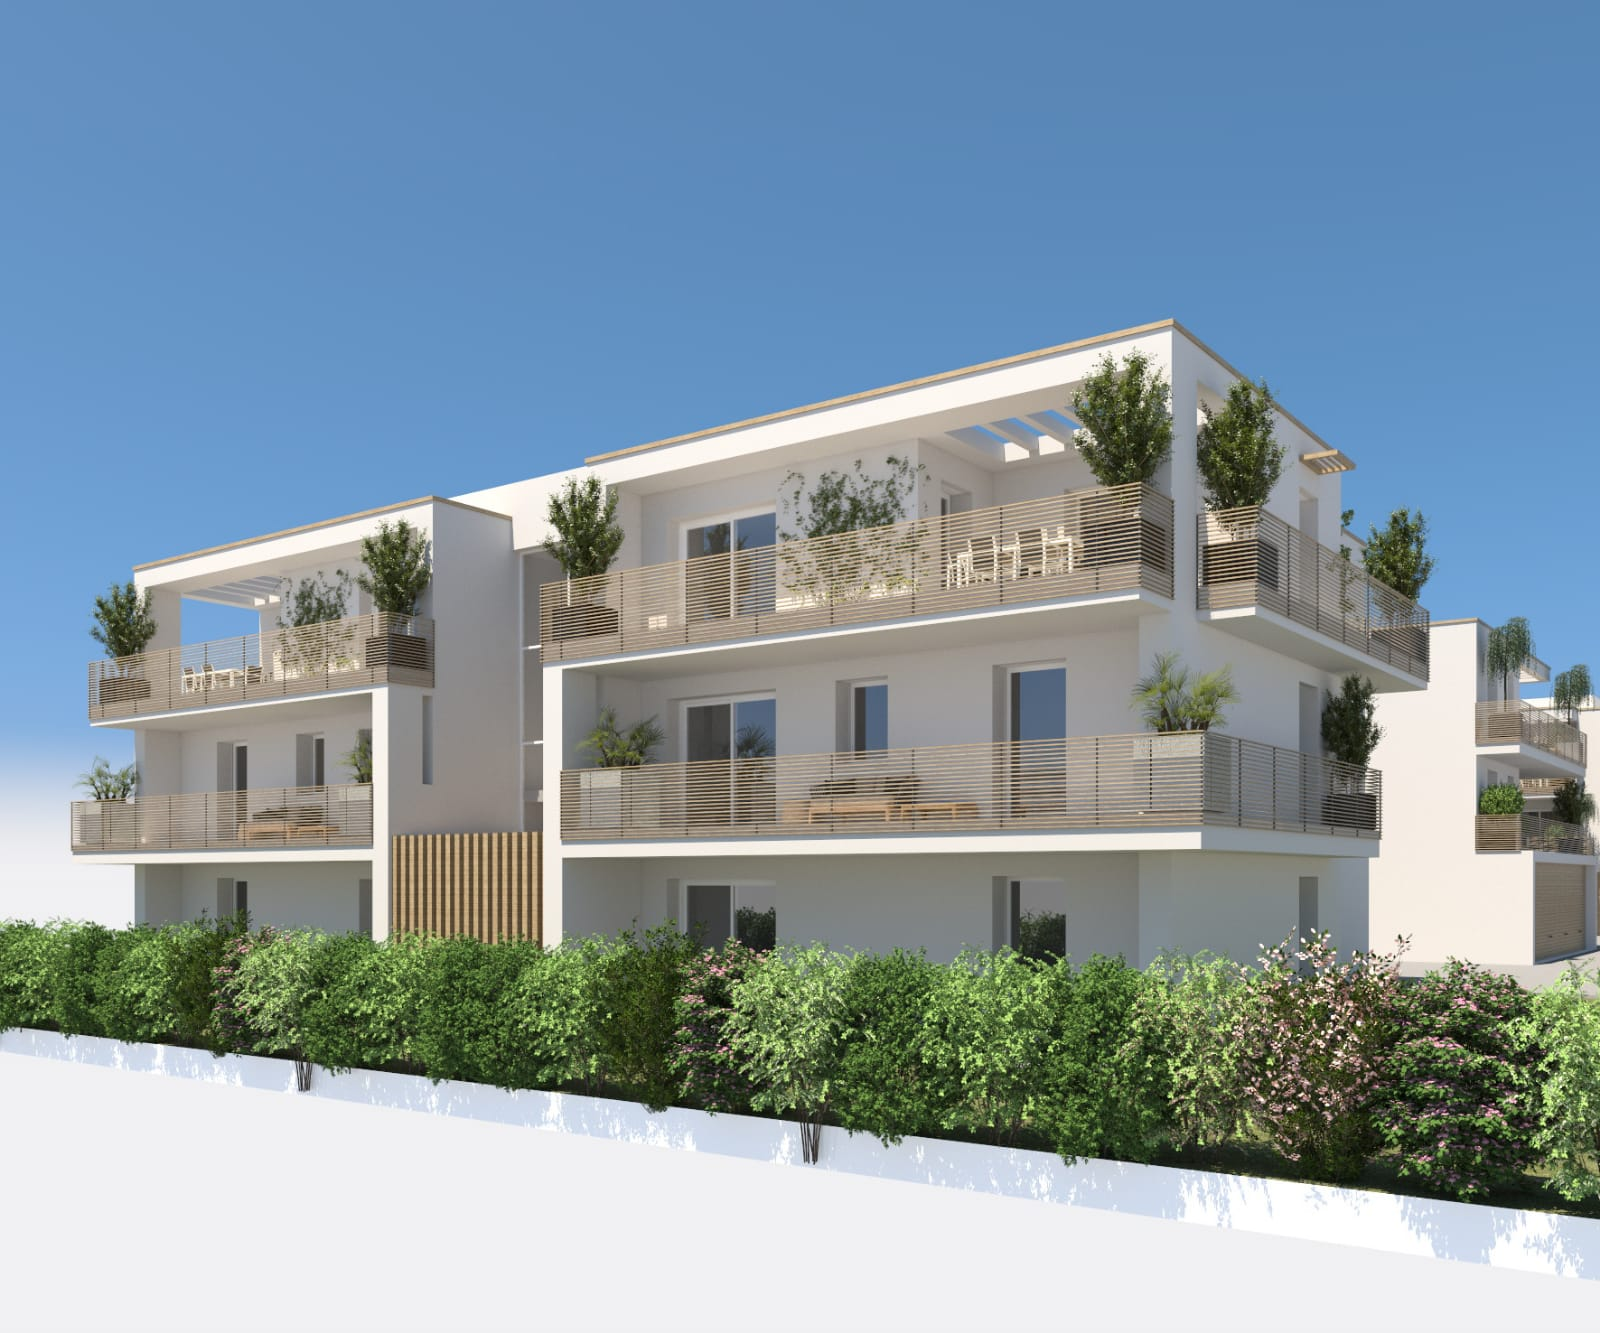 Nuovo cantiere sassuolo via indipendenza for Palazzine moderne